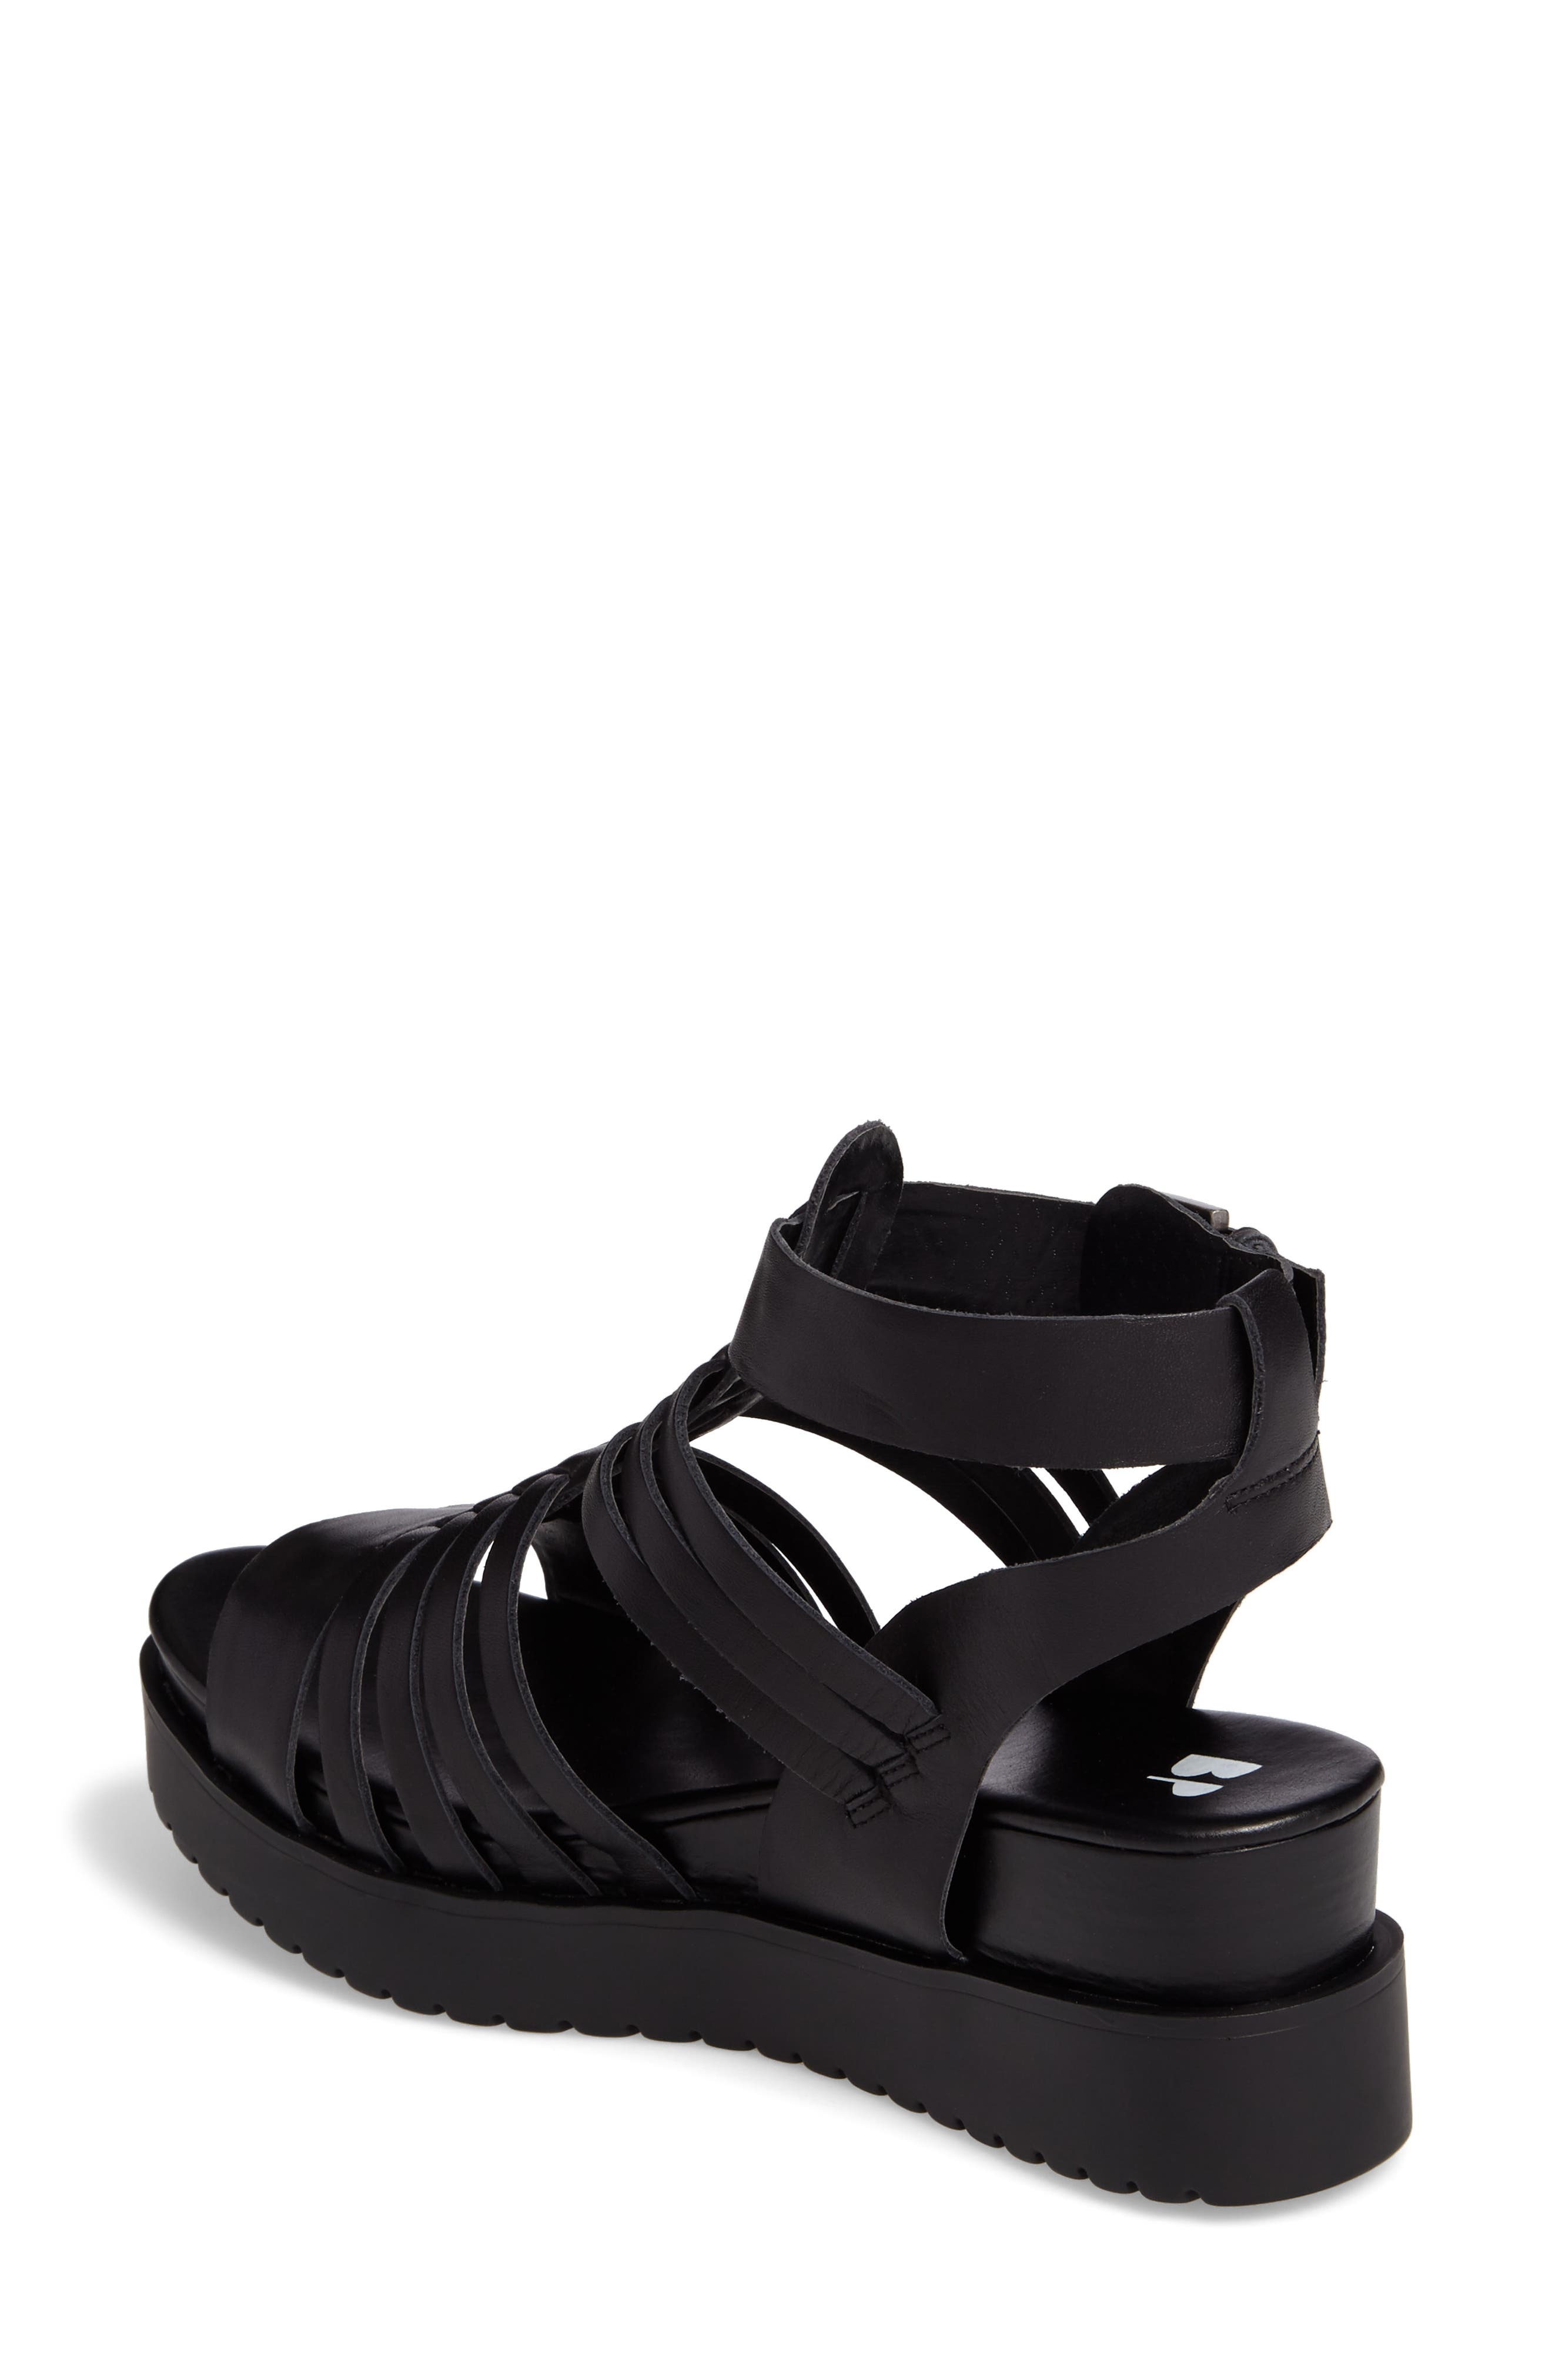 Ronnie Gladiator Platform Sandal,                             Alternate thumbnail 2, color,                             Black Leather